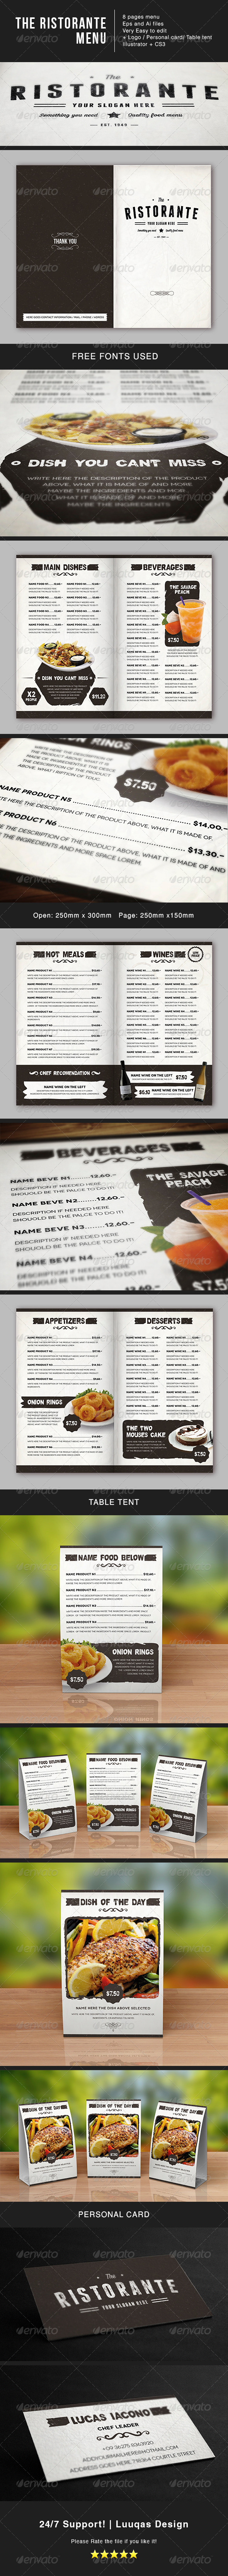 The Ristorante Food Menu - Food Menus Print Templates